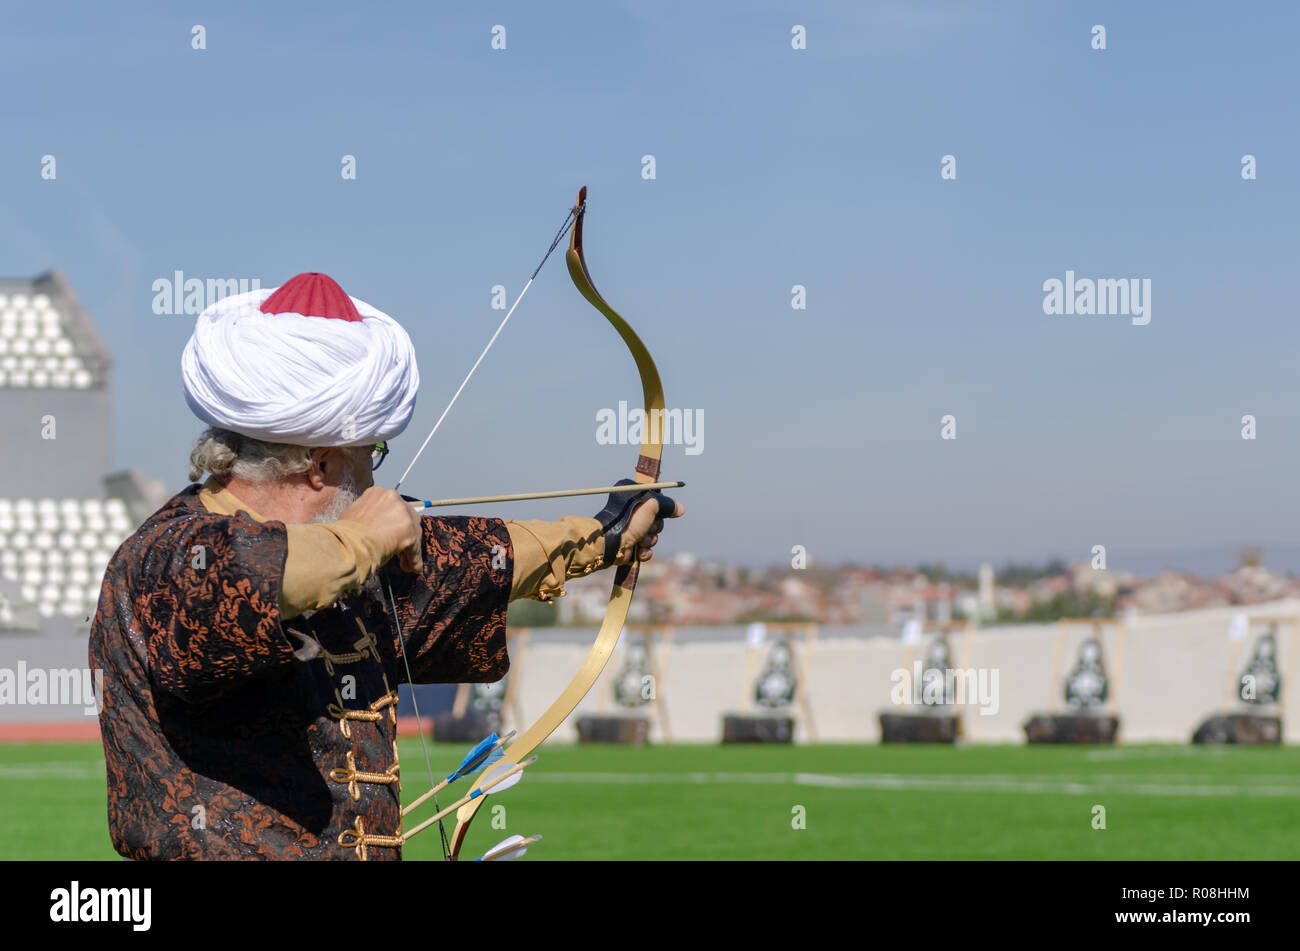 Eskisehir,TURKEY-October 28,2018:Traditional Archery .The athlete is shooting at the target. Stock Photo